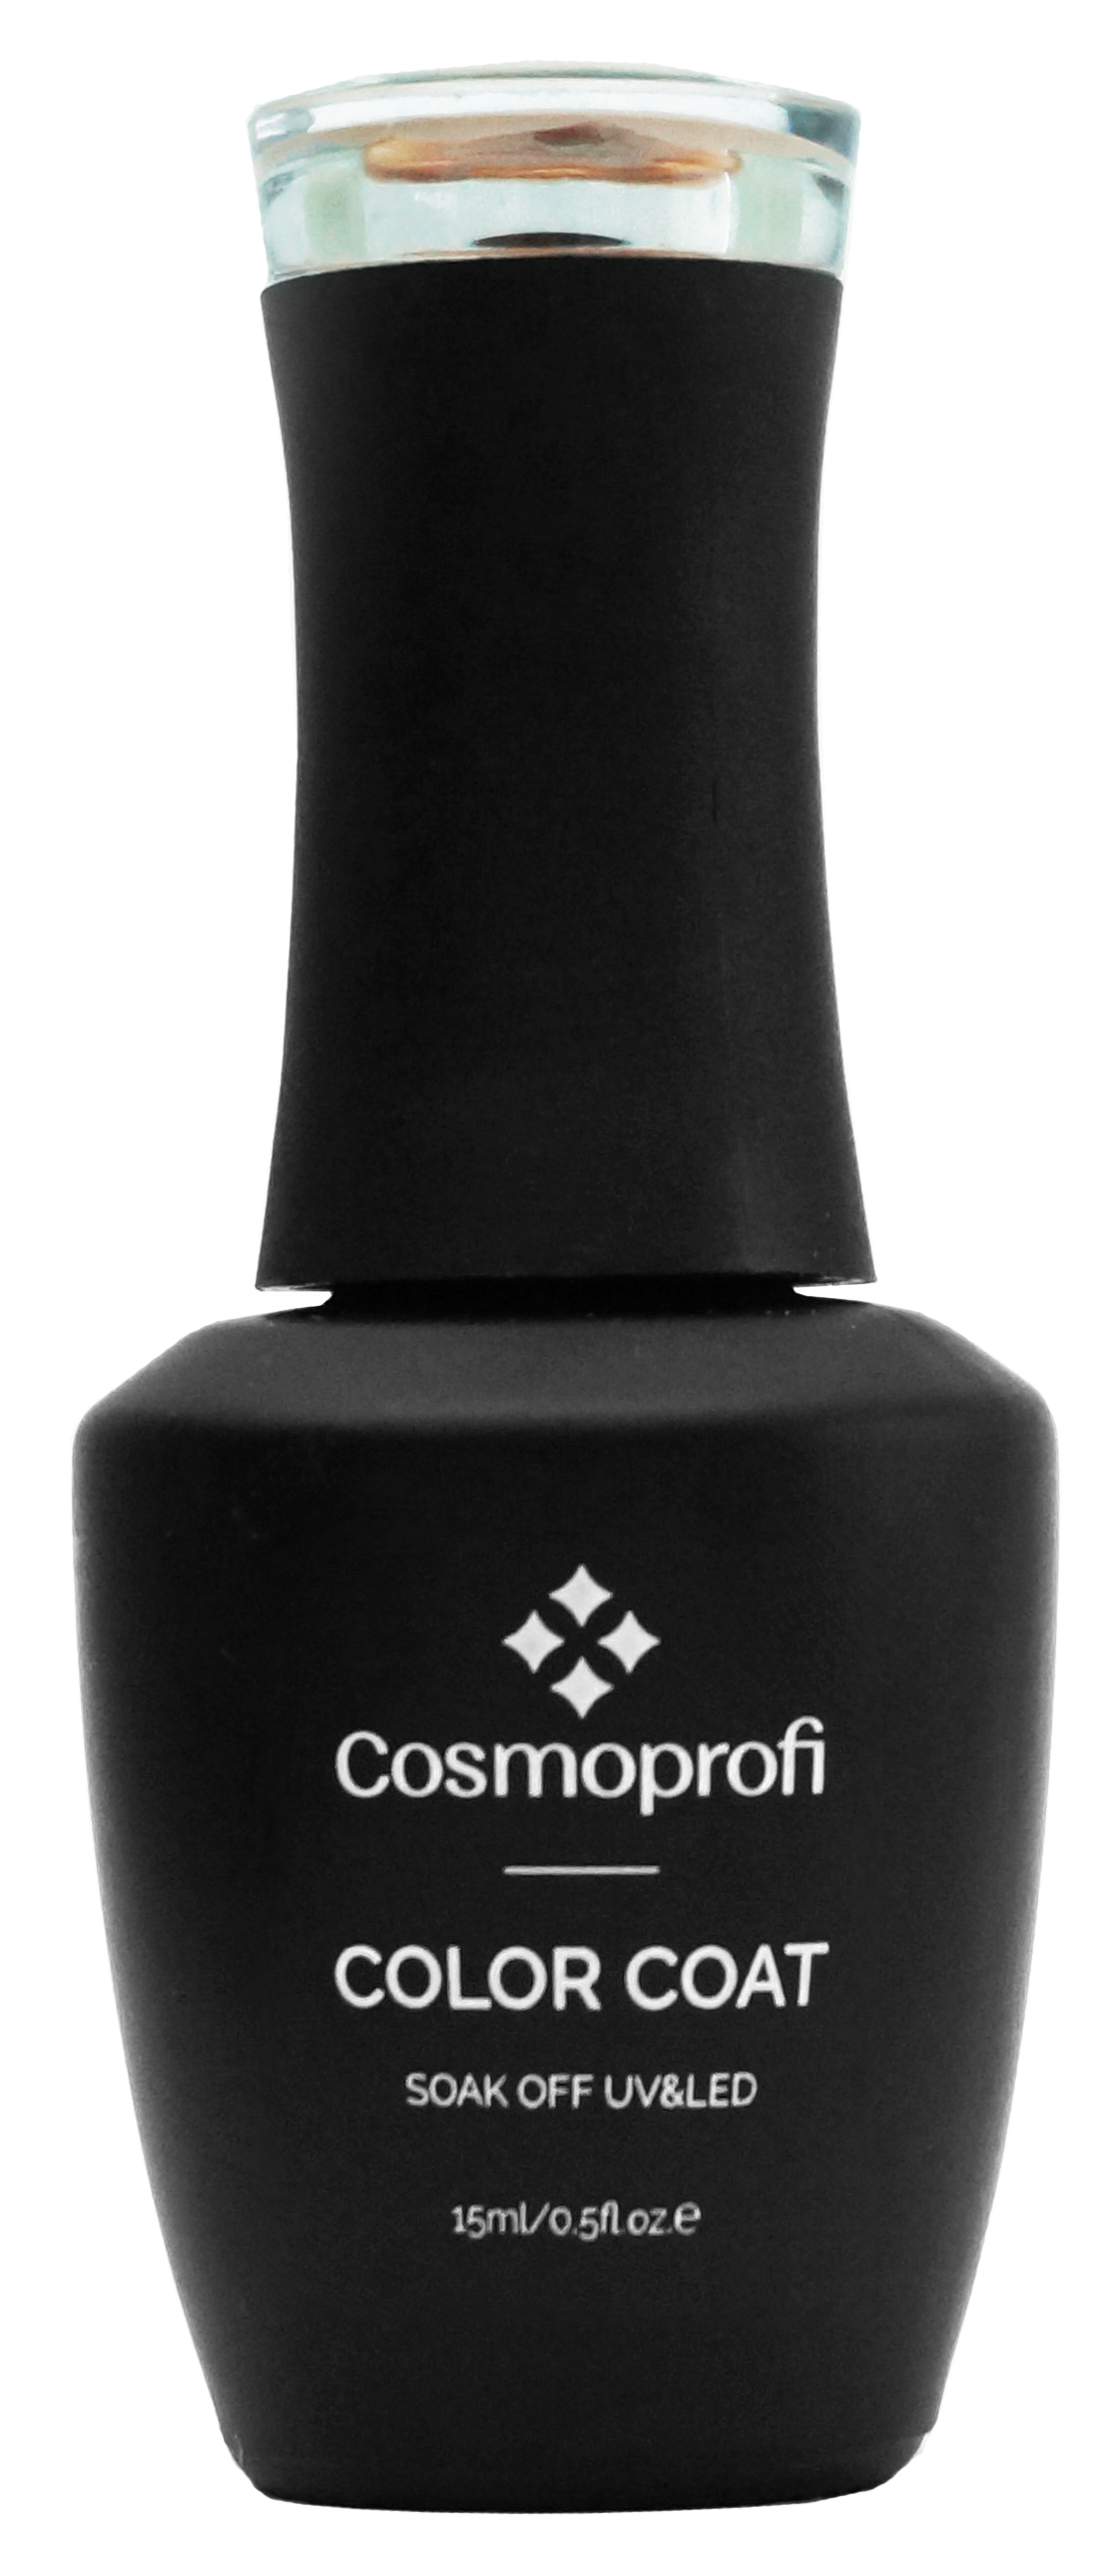 Гель-лак Cosmoprofi, Color coat № 306, 15 мл